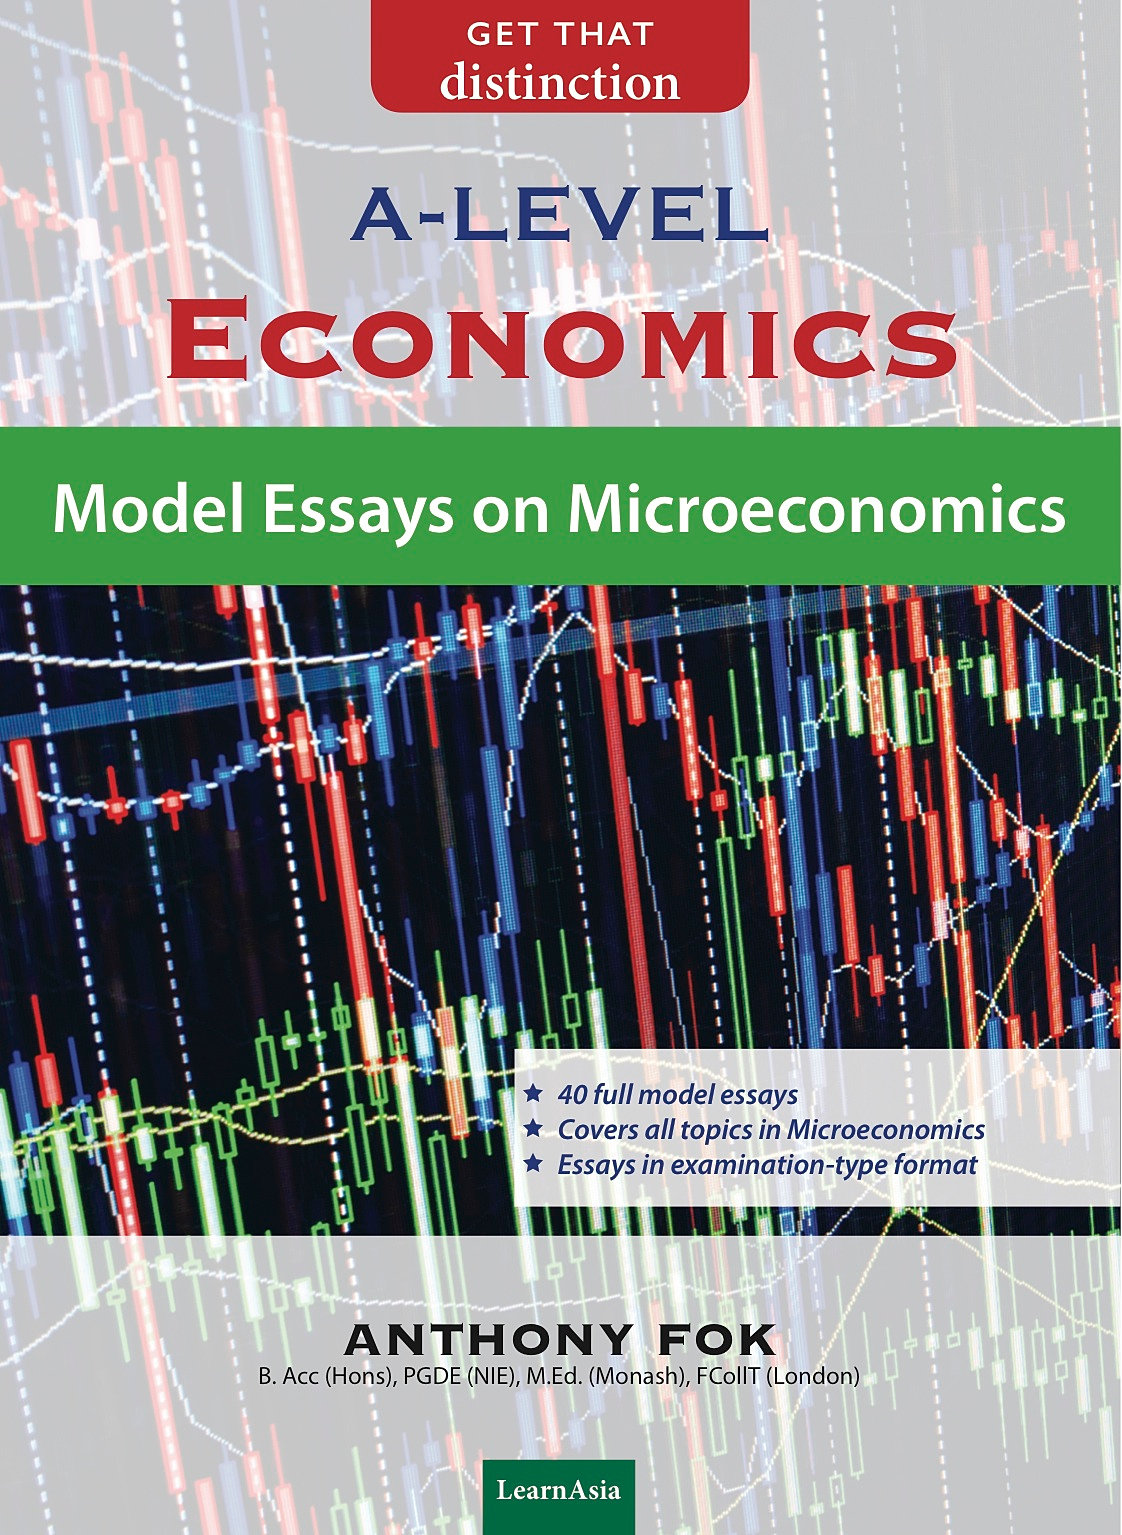 jc economics tuition singapore a level economics microeconomics model essays